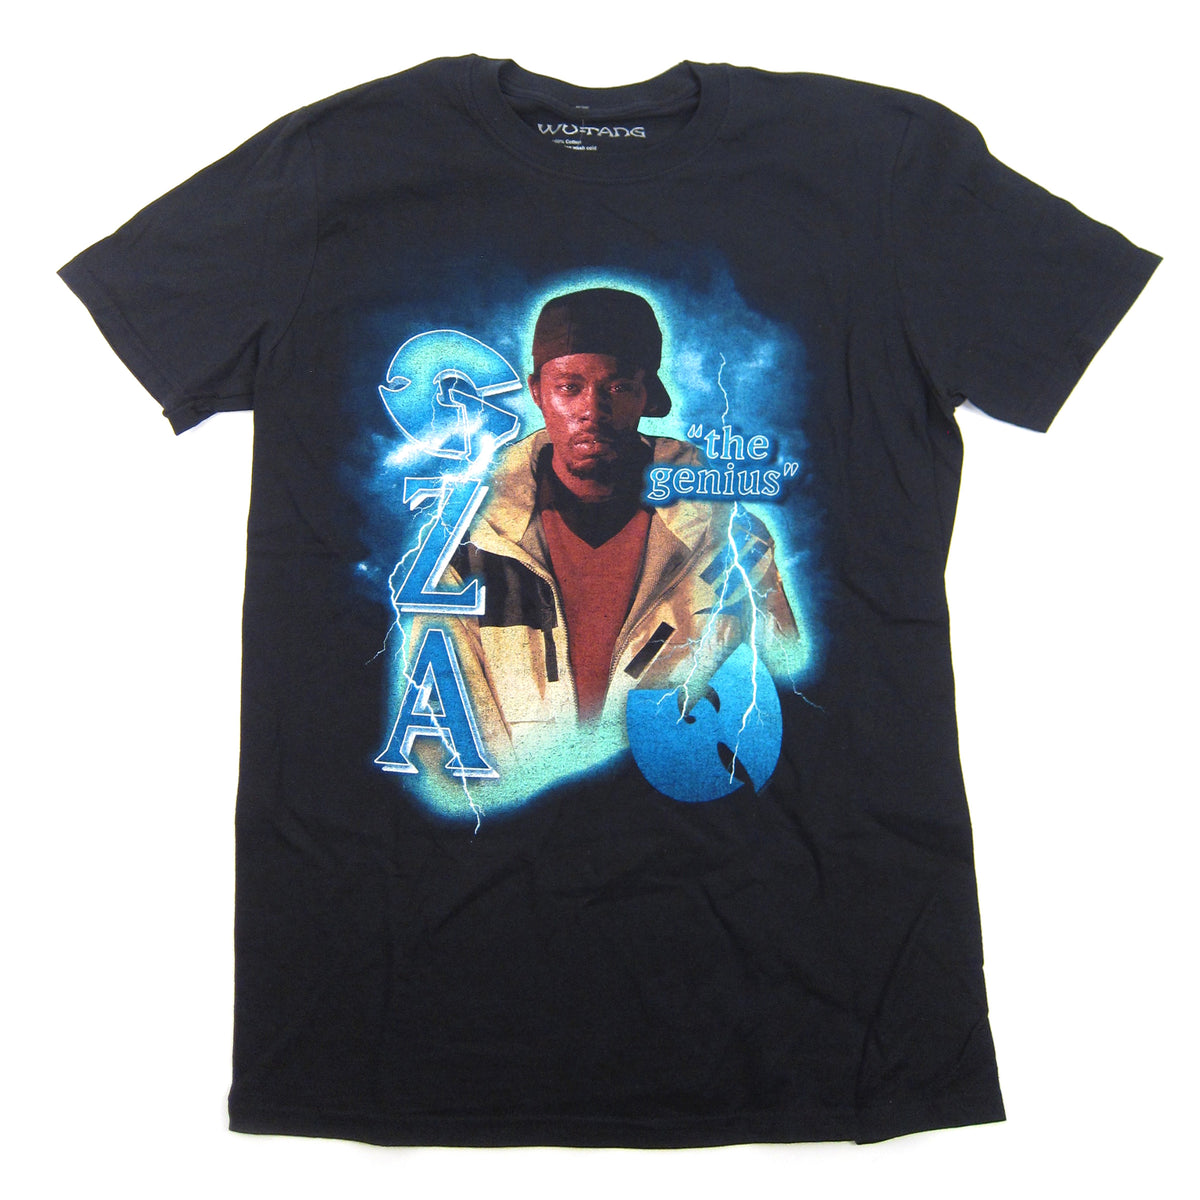 Wu-Tang Clan: GZA The Genius Shirt - Black